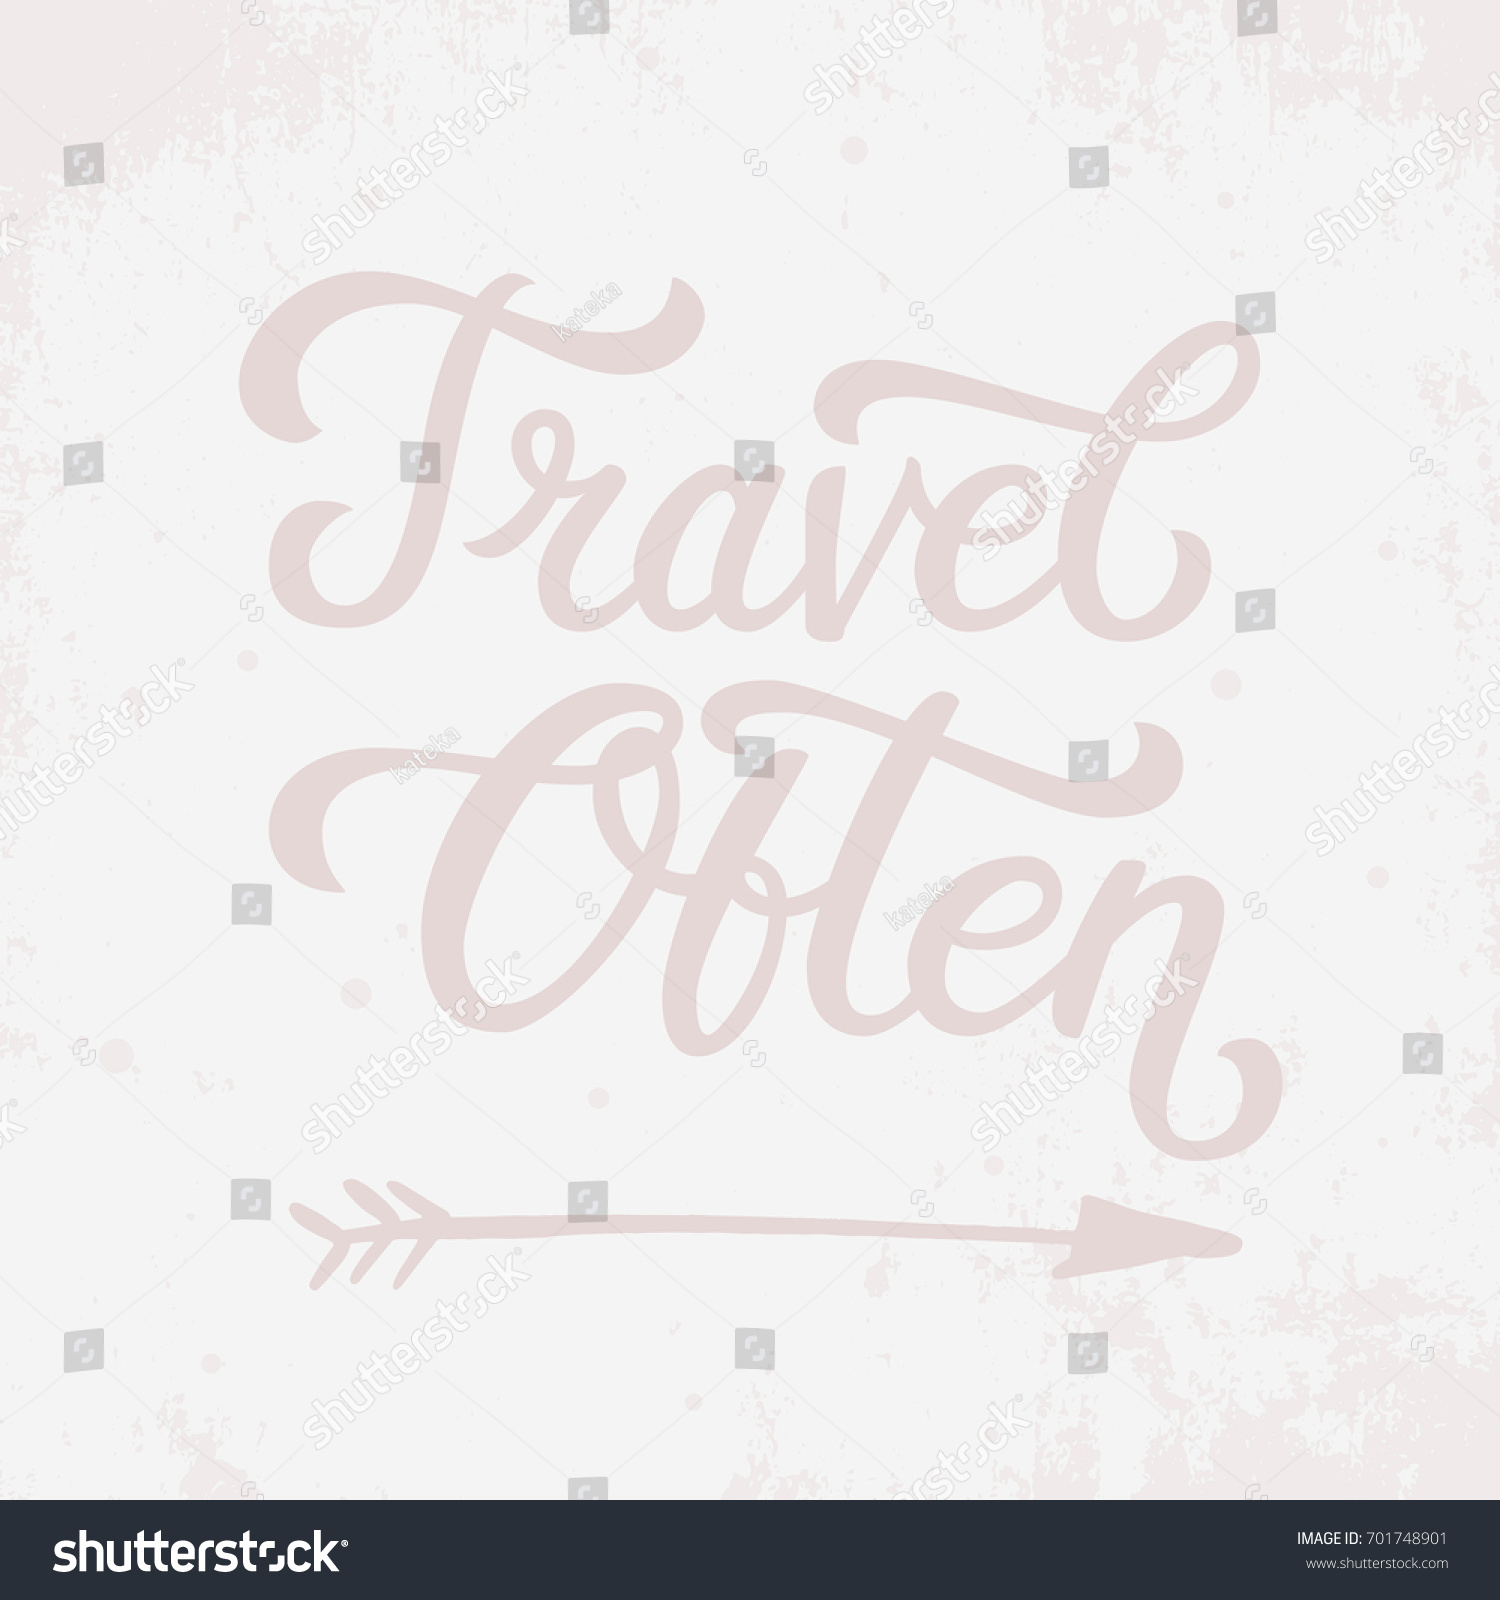 Arrow Quotes Life Travel Often Life Style Inspiration Quotes Stock Vector 701748901